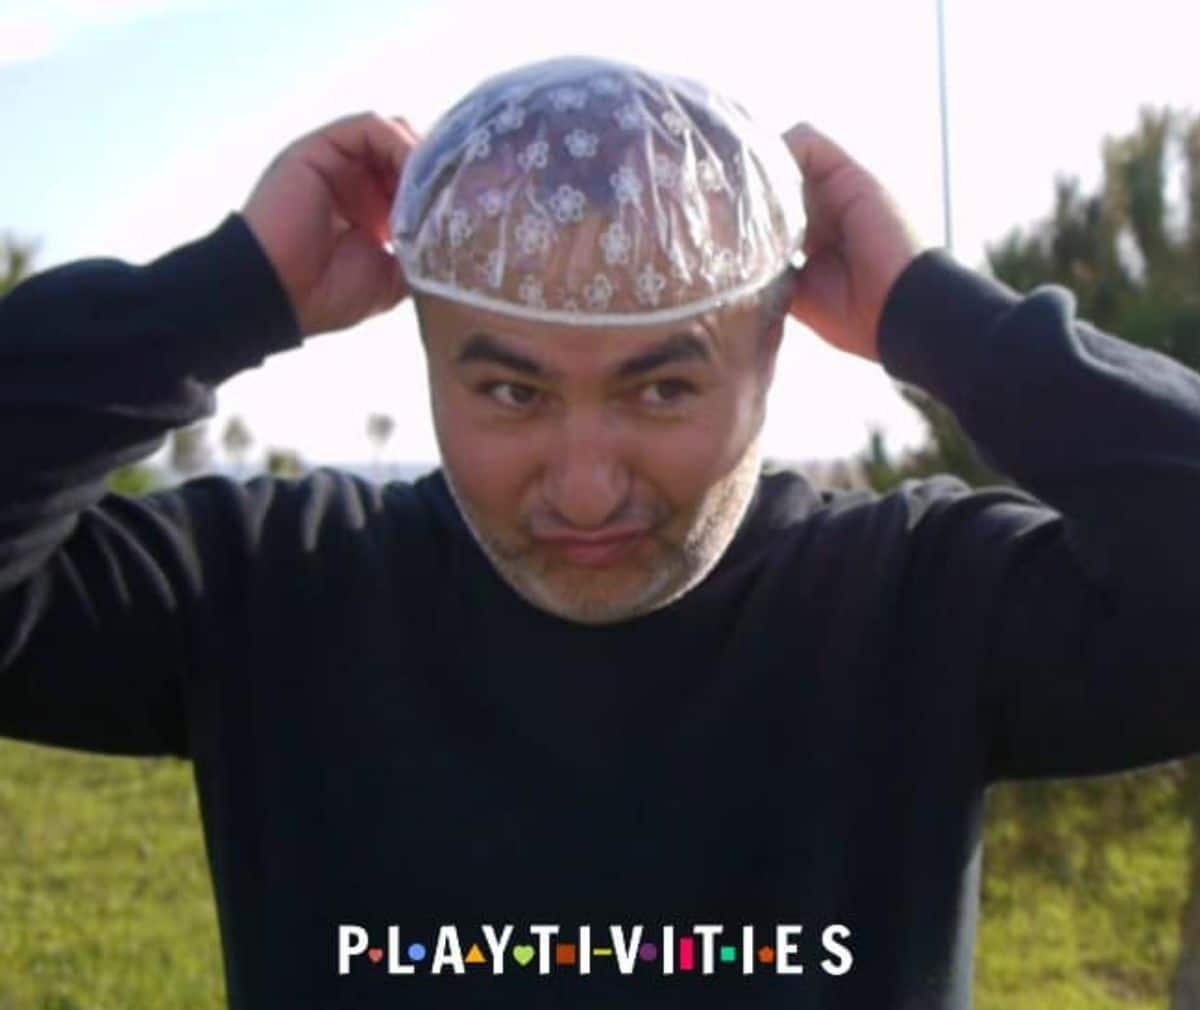 A man stands outside in a dark jumper and is putting a shower cap on his head.